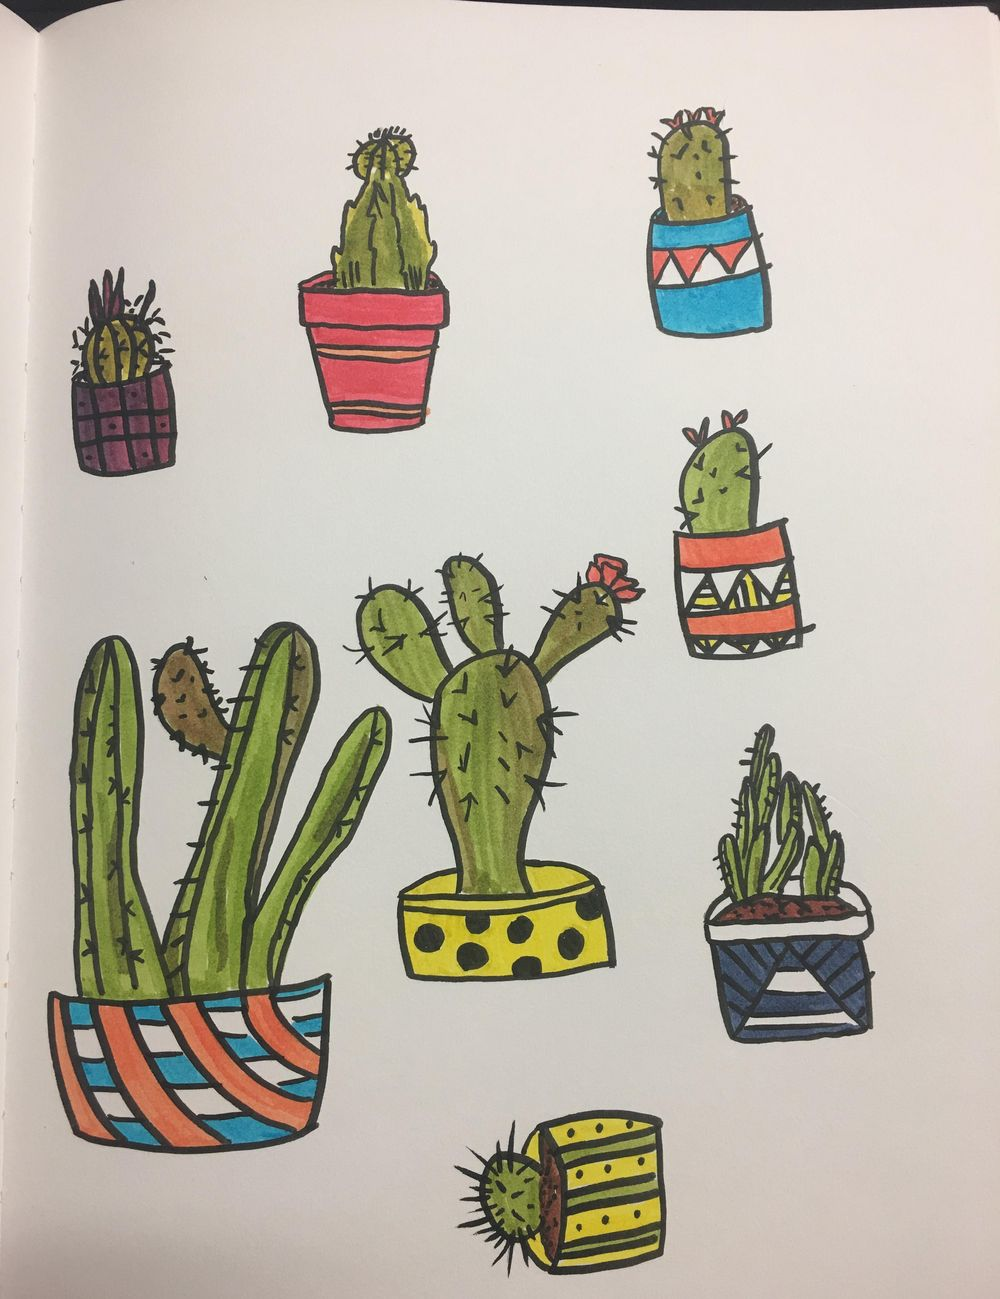 Cacti love - image 2 - student project